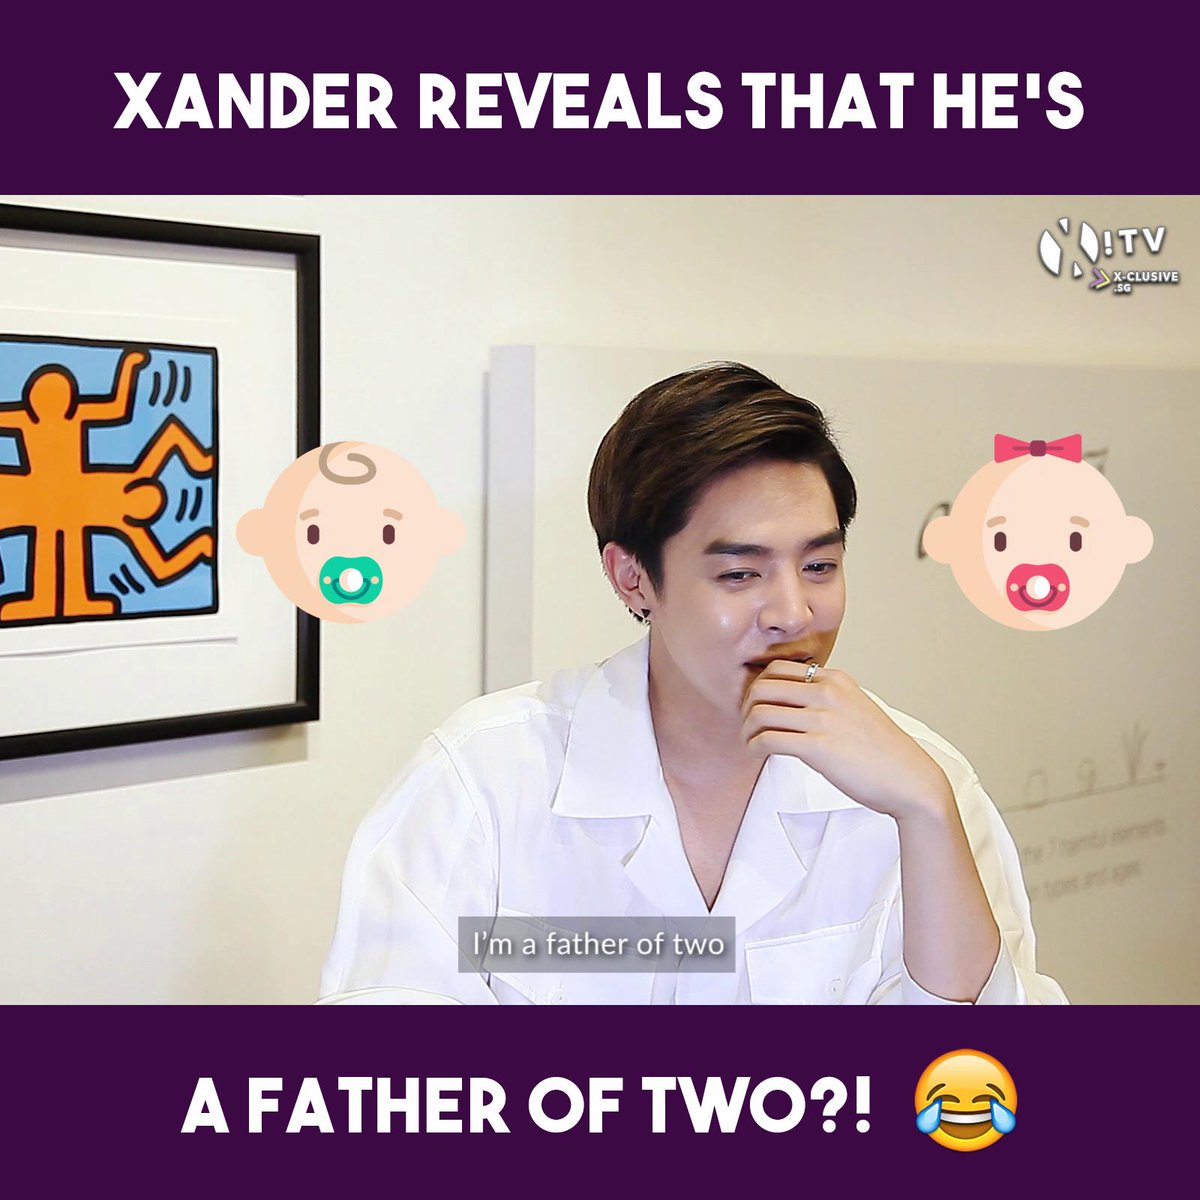 [#I_AM] Xander (@alexander_0729) is a father of two?! 😱 Shocking secrets(?) to be revealed by #Xander in our upcoming I AM interview, coming to (x)clusive very soon! Stay tuned! Watch the teaser NOW ⯈ youtu.be/Udf2BZJU9q4